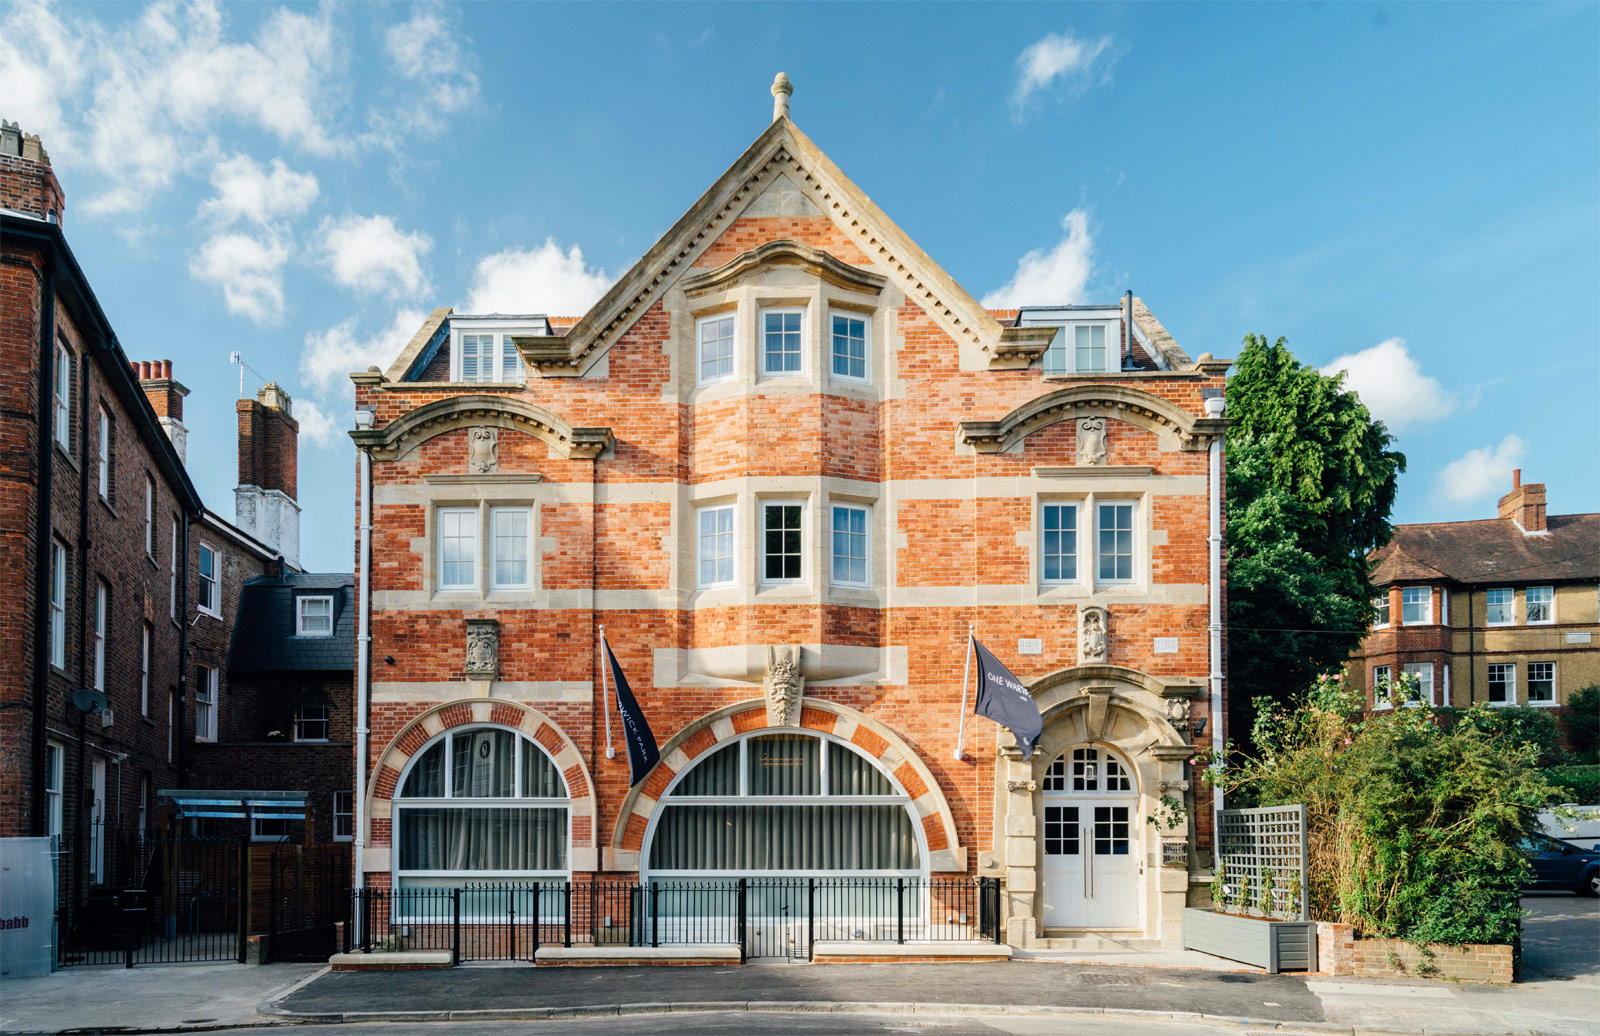 One Warwick Park - A New Luxury Hotel In The Garden of England